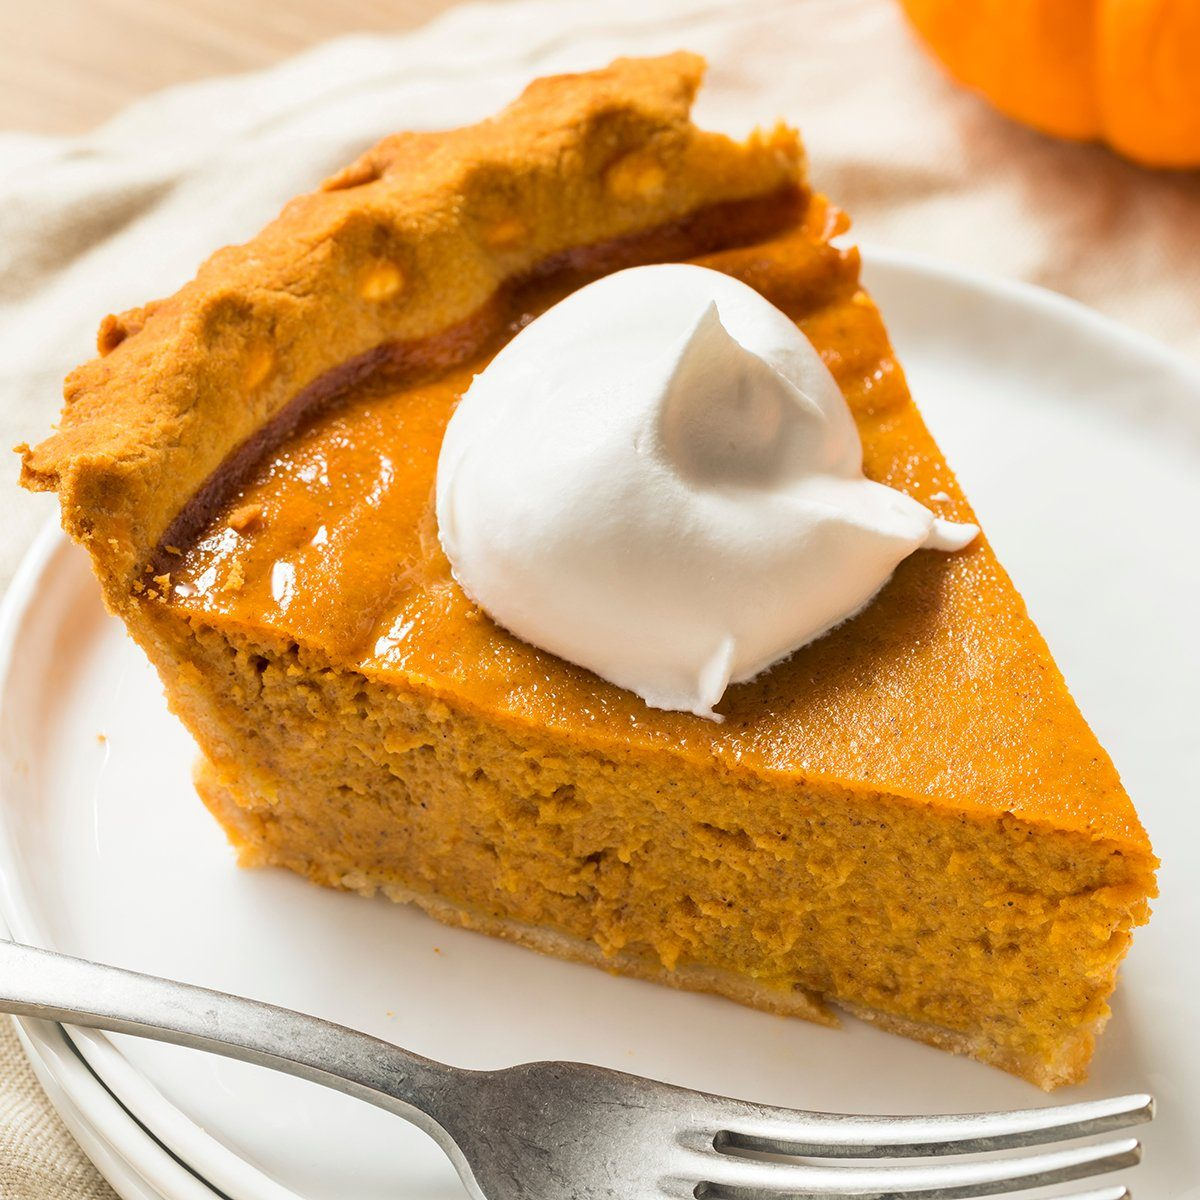 Sweet Homemade Thanksgiving Pumpkin Pie Ready to Eat; Shutterstock ID 1185116455; Job (TFH, TOH, RD, BNB, CWM, CM): TOH